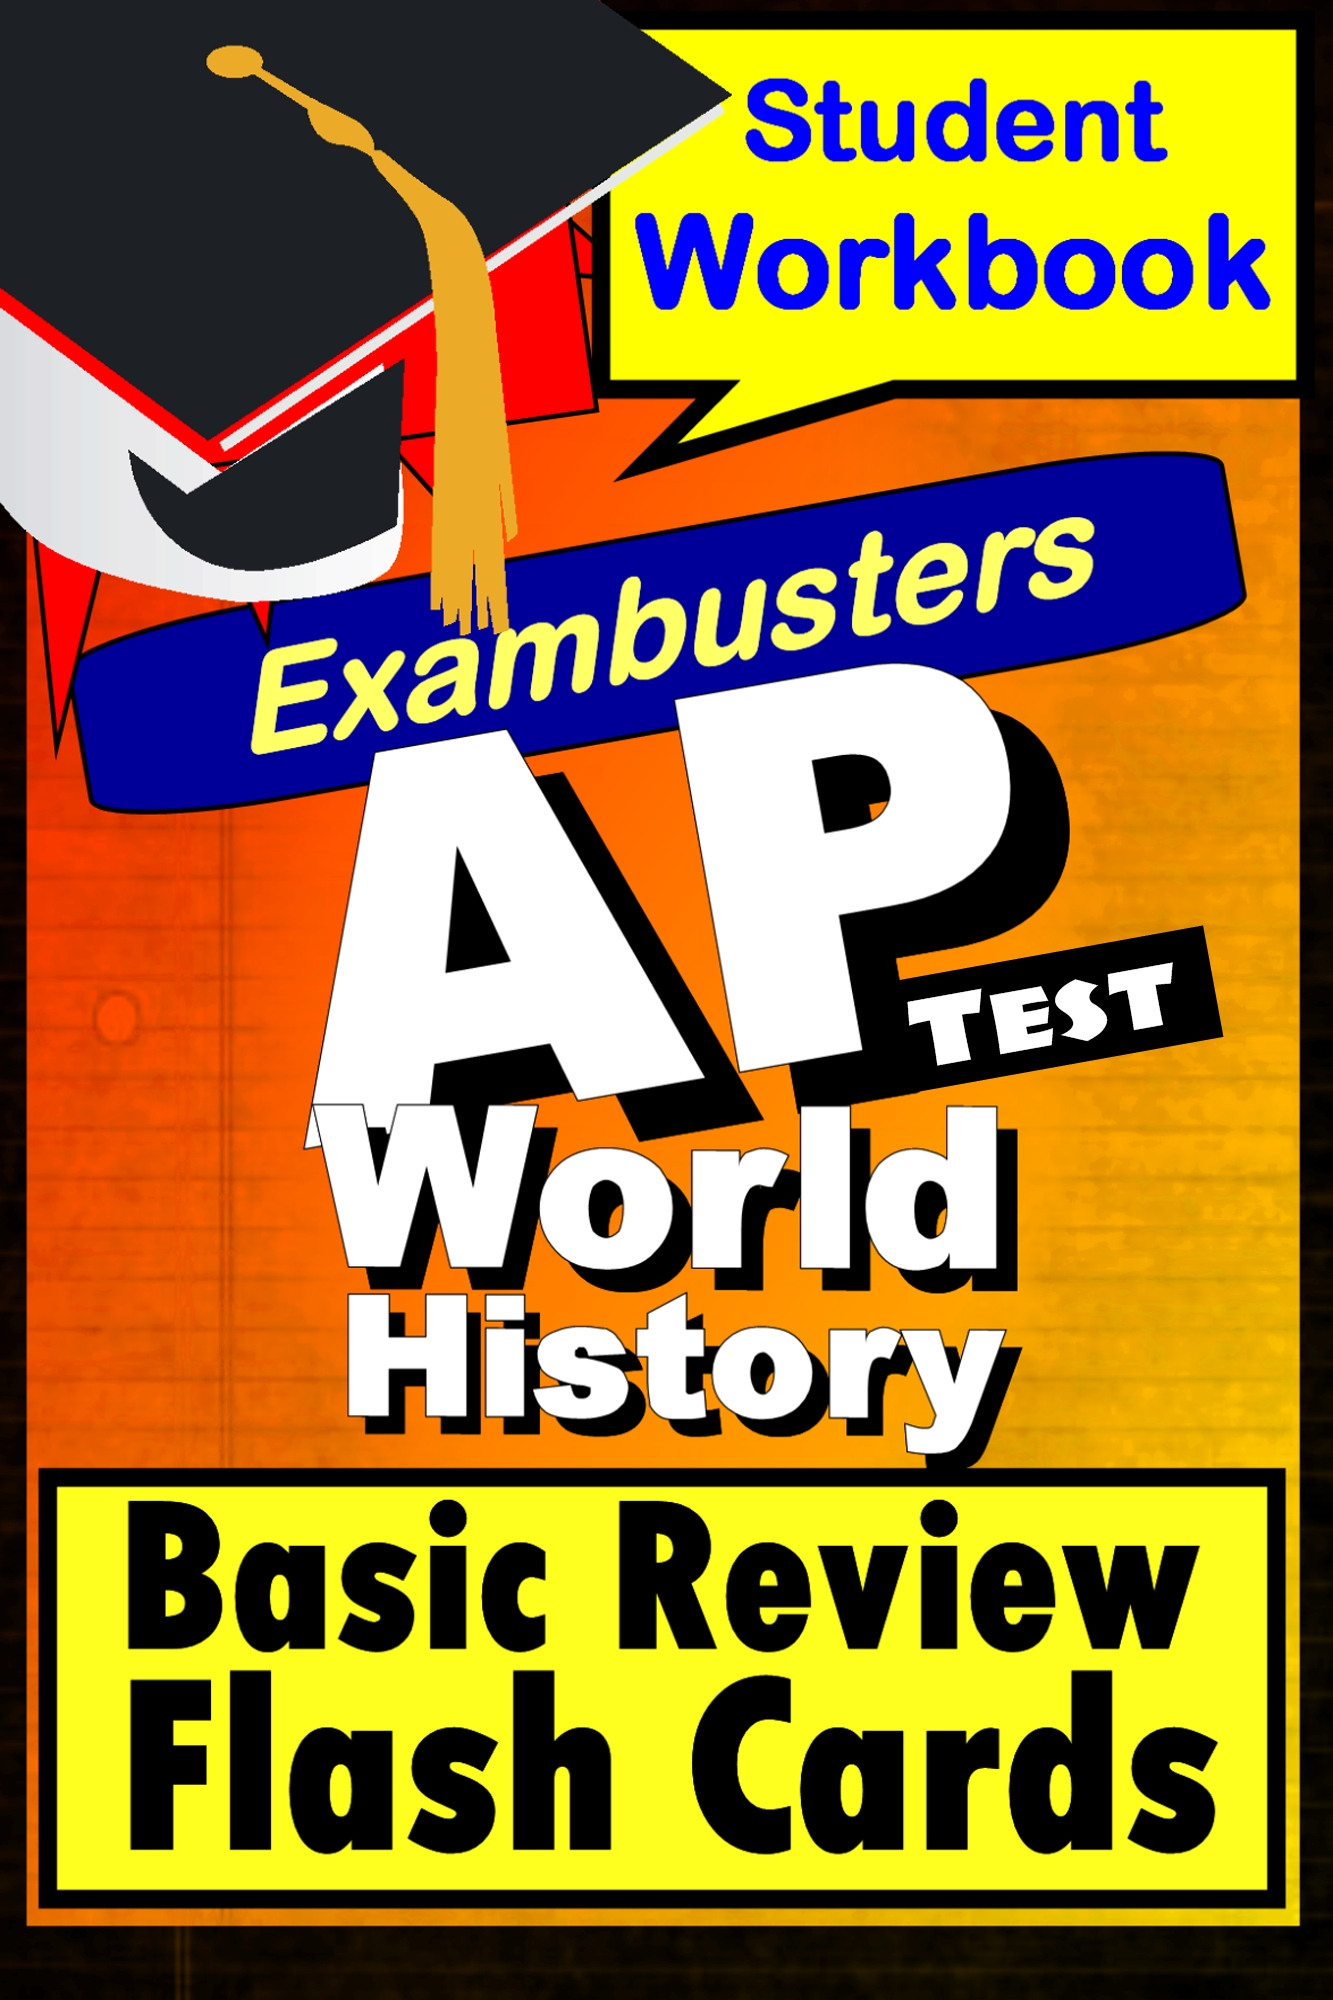 AP World History Test--Exambusters Flashcards By: Ace Academics